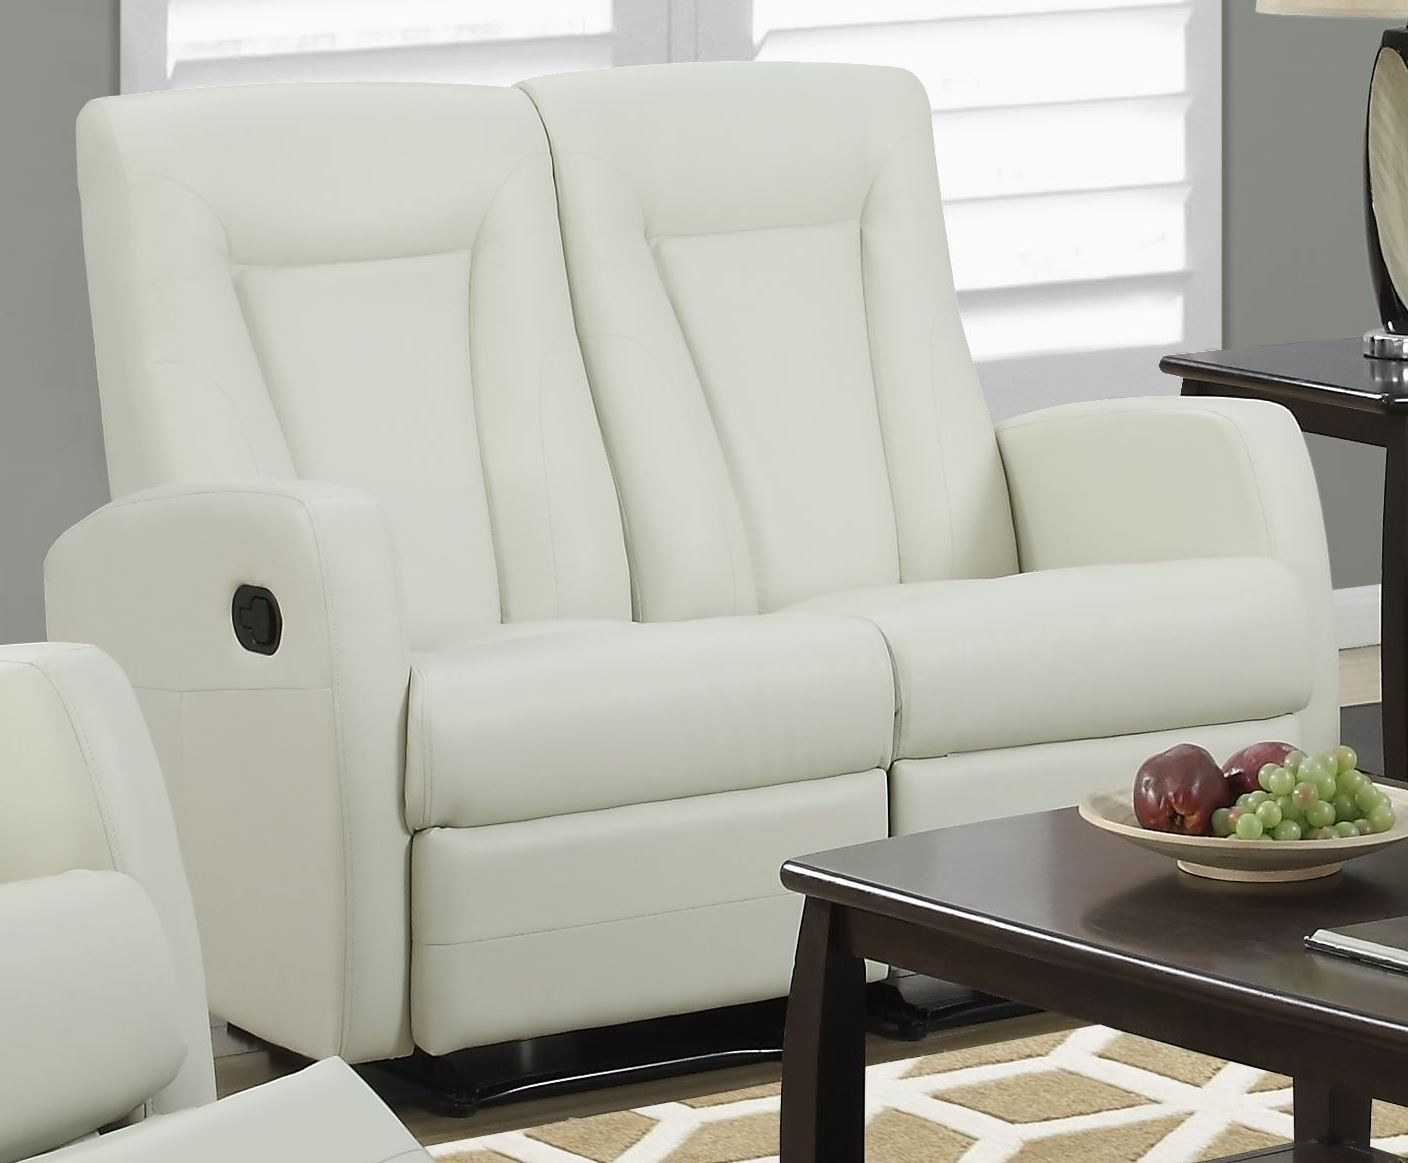 82iv 2 Ivory Bonded Leather Reclining Loveseat From